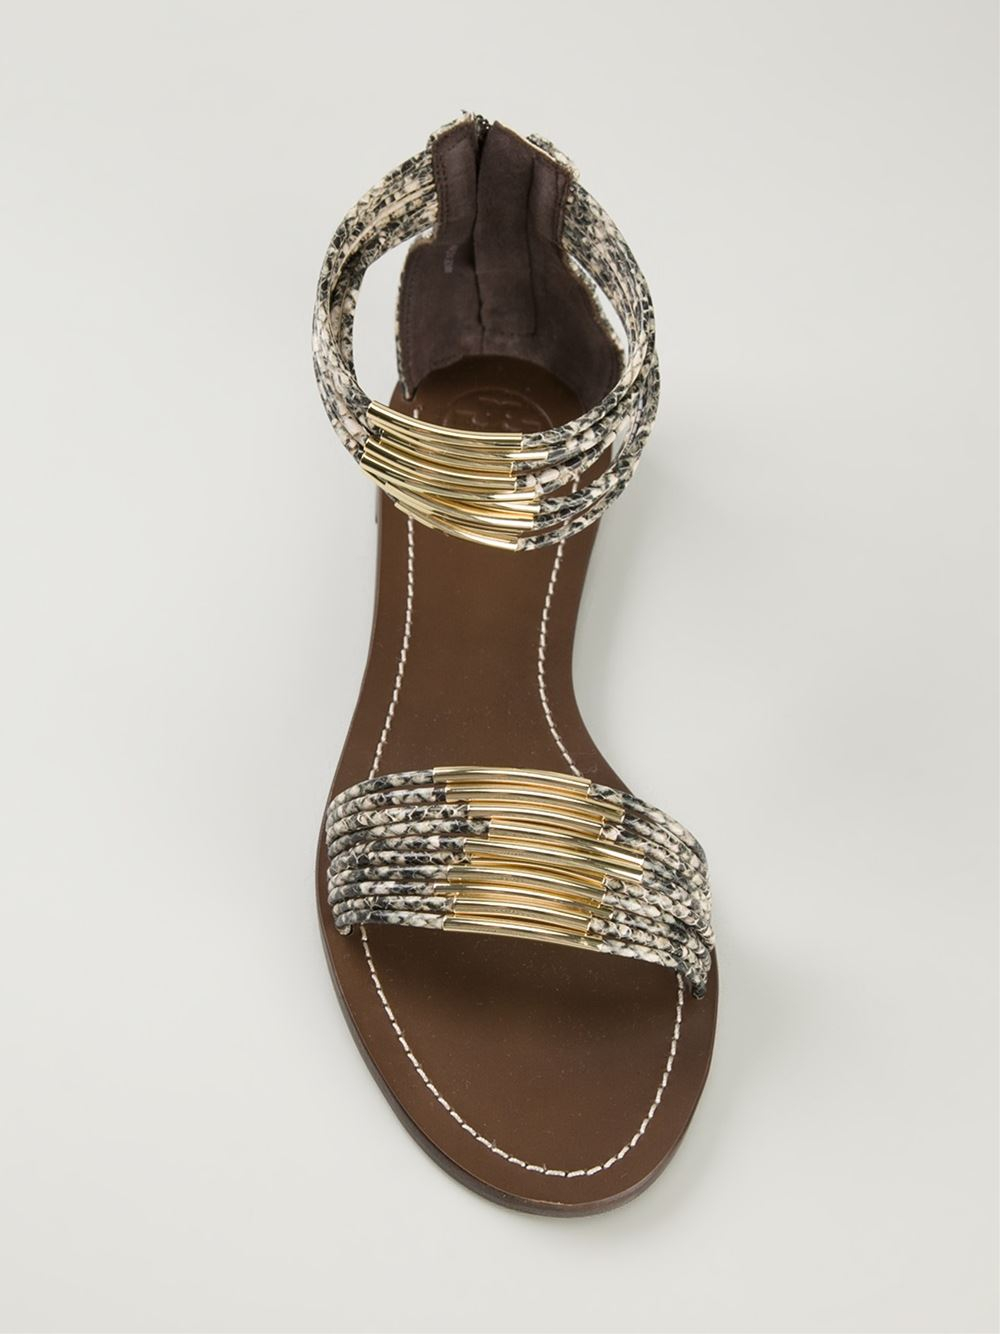 outlet Inexpensive Tory Burch Leather Embellished Sandals best wholesale cheap online wide range of sale online cheap sale release dates buy cheap price 3CiL8